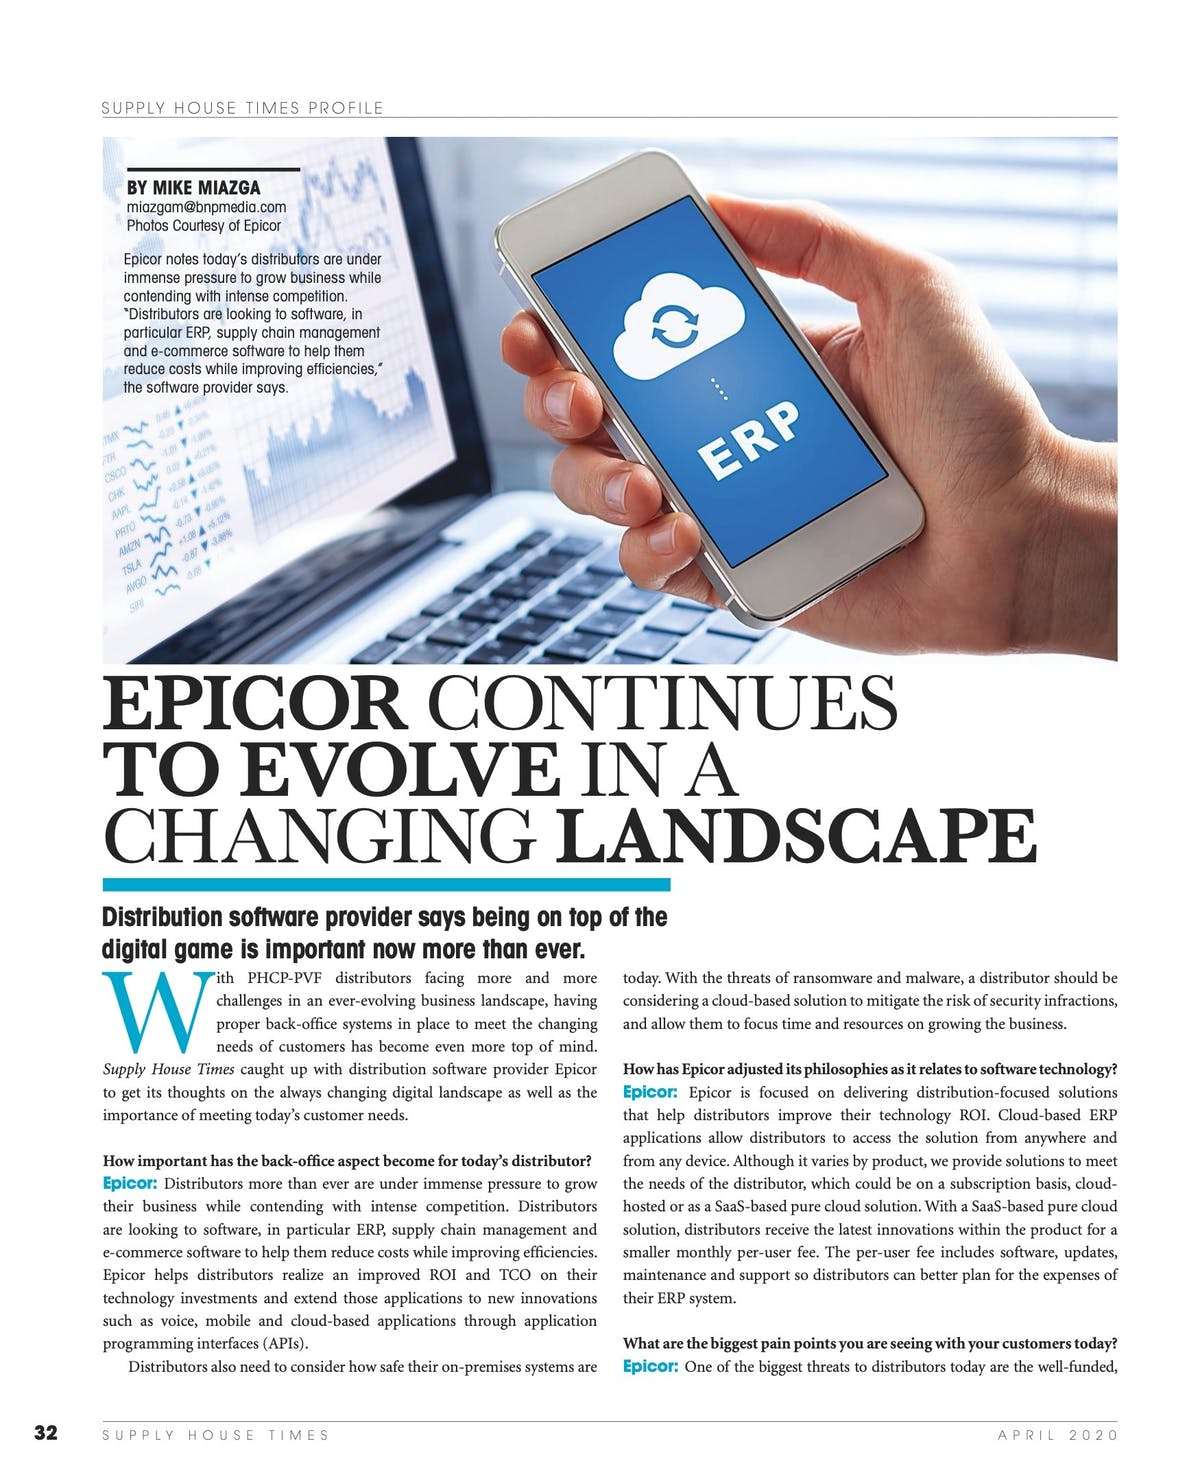 Epicor Prophet 21 White Paper - Epicor Continues to Evolve in a Changing Landscape